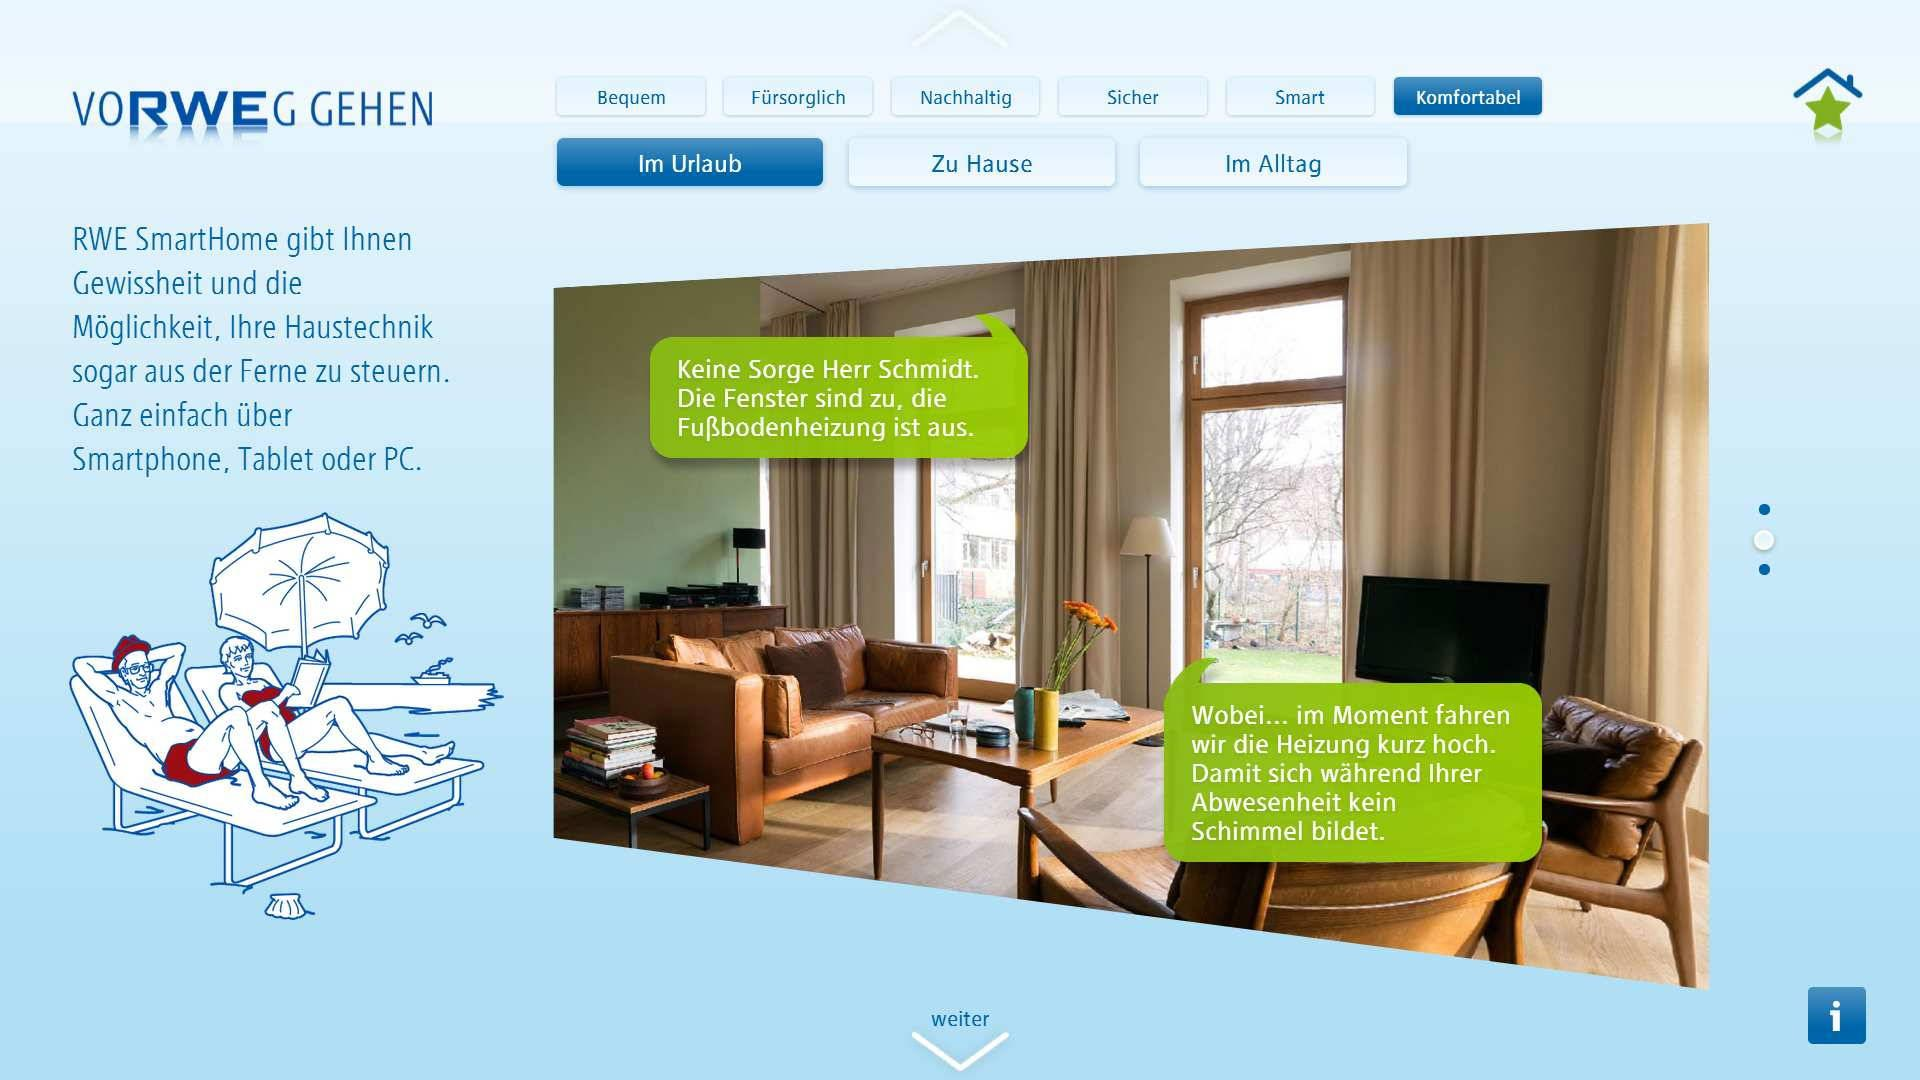 smarthome app - digital storytelling with cloudfolio